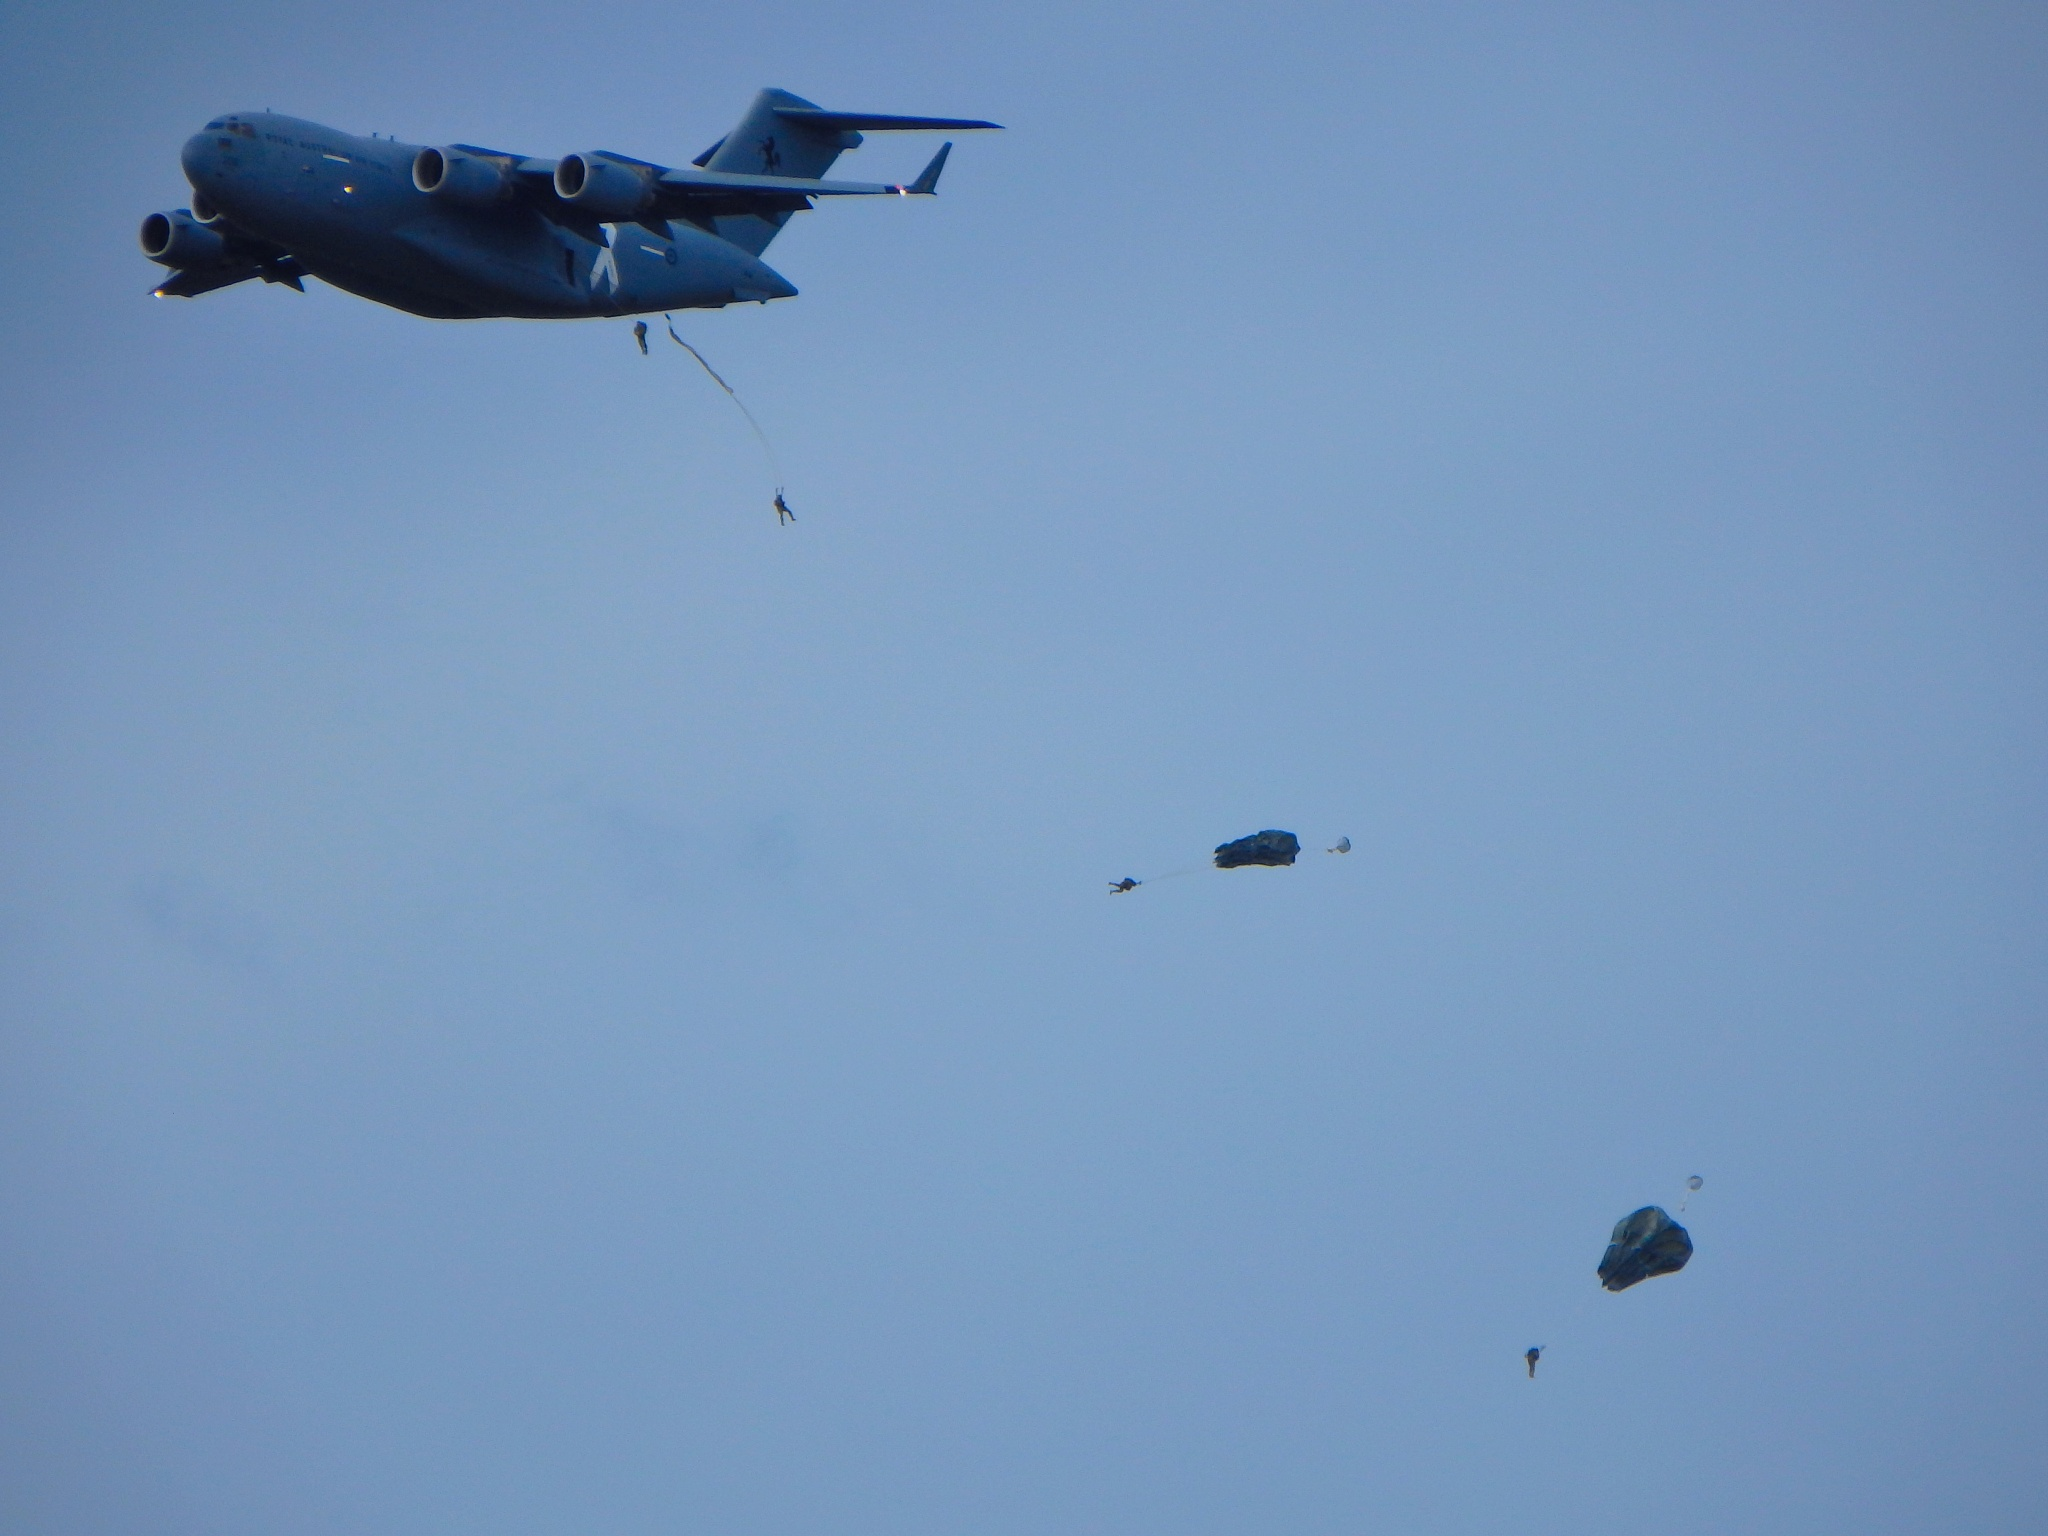 paratroopers by hockeymask1